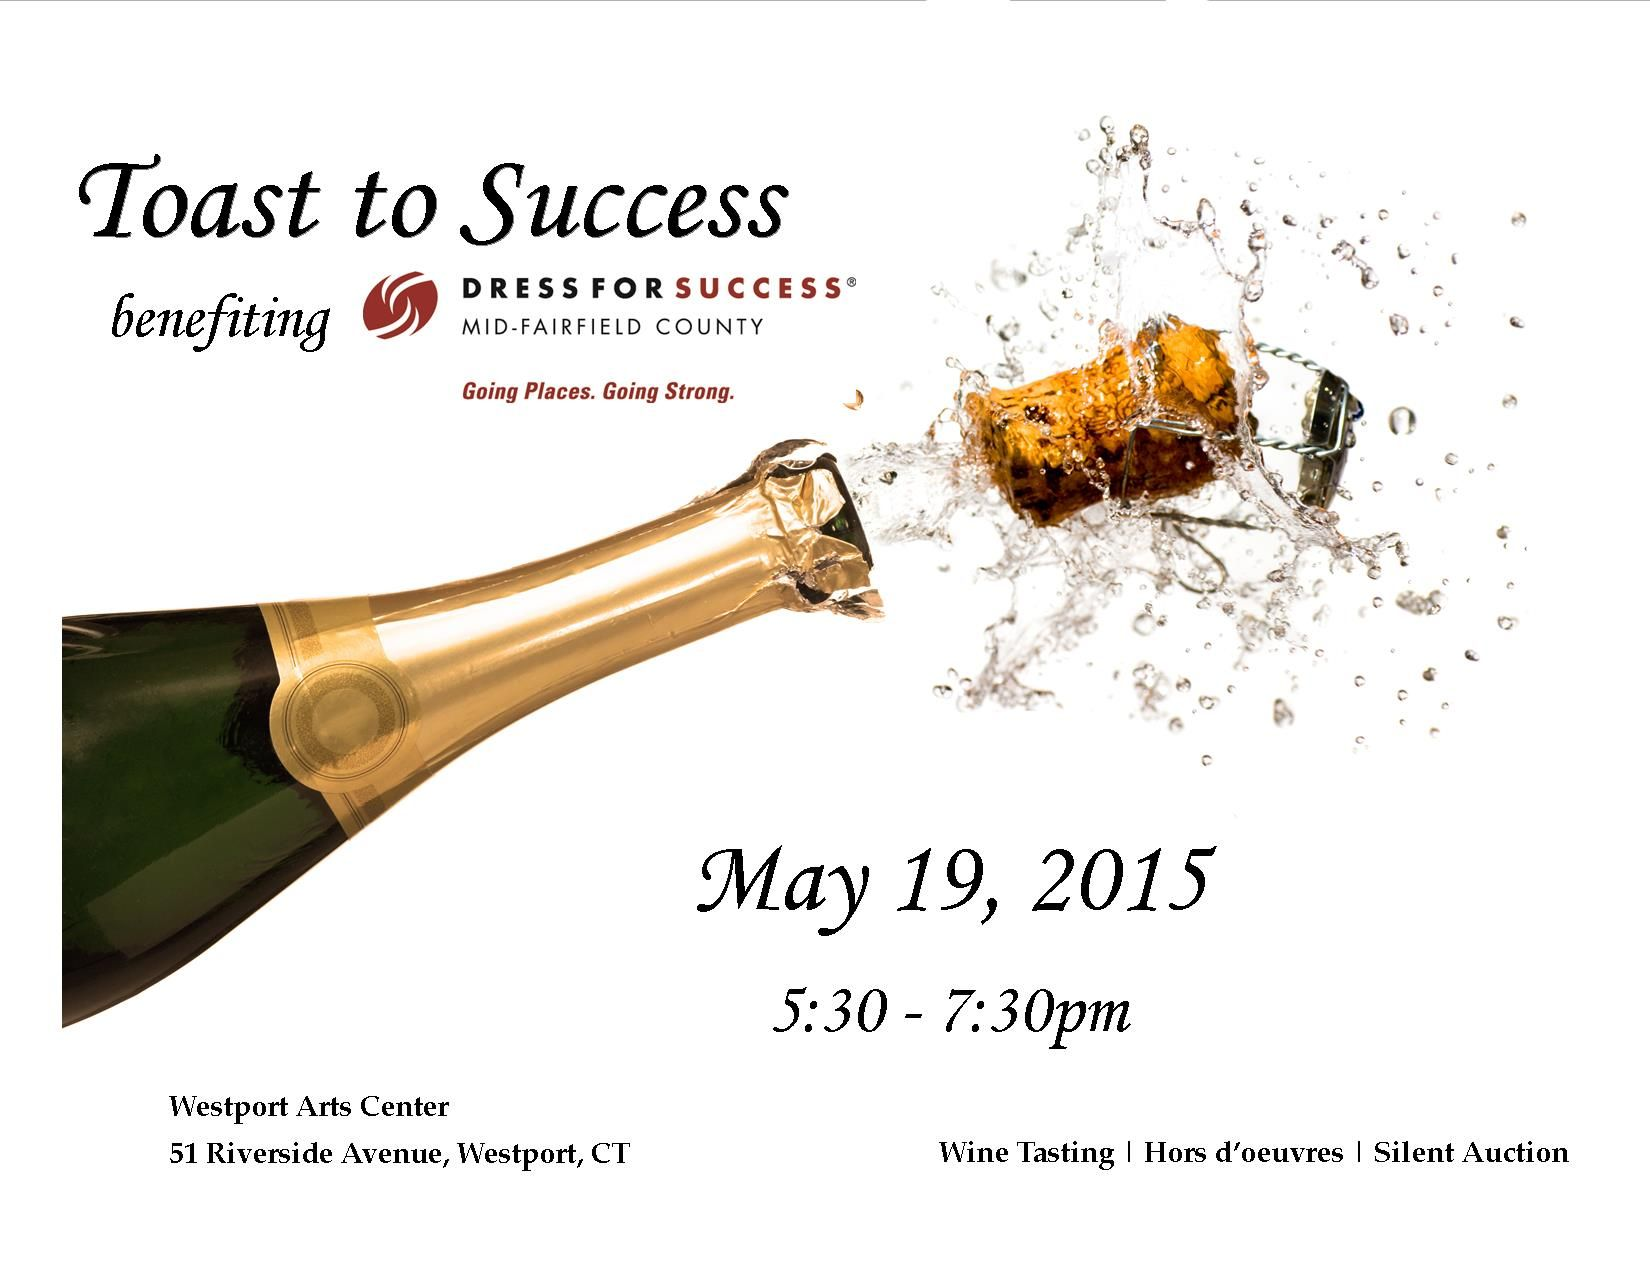 Pin by Dress for Success MidFairfield County on